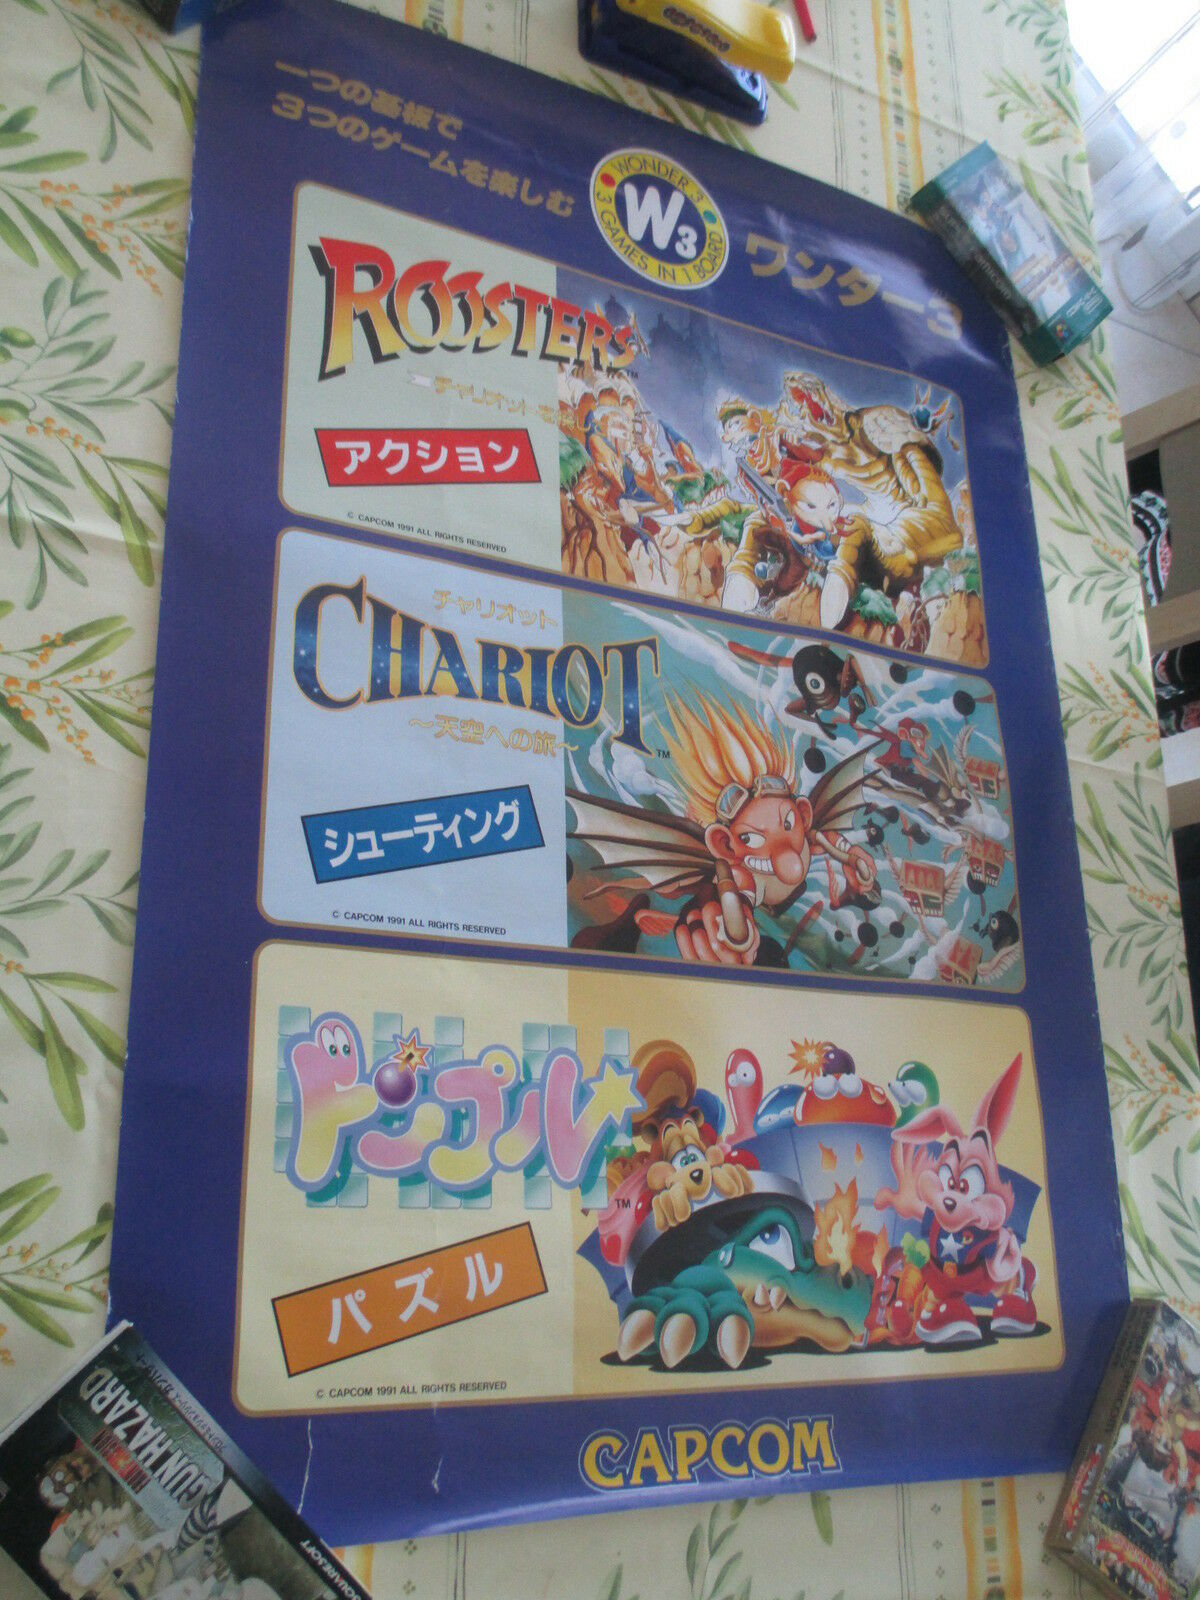 WONDER 3 THREE WONDERS SHOOT CAPCOM ARCADE B1 SIZE OFFICIAL POSTER